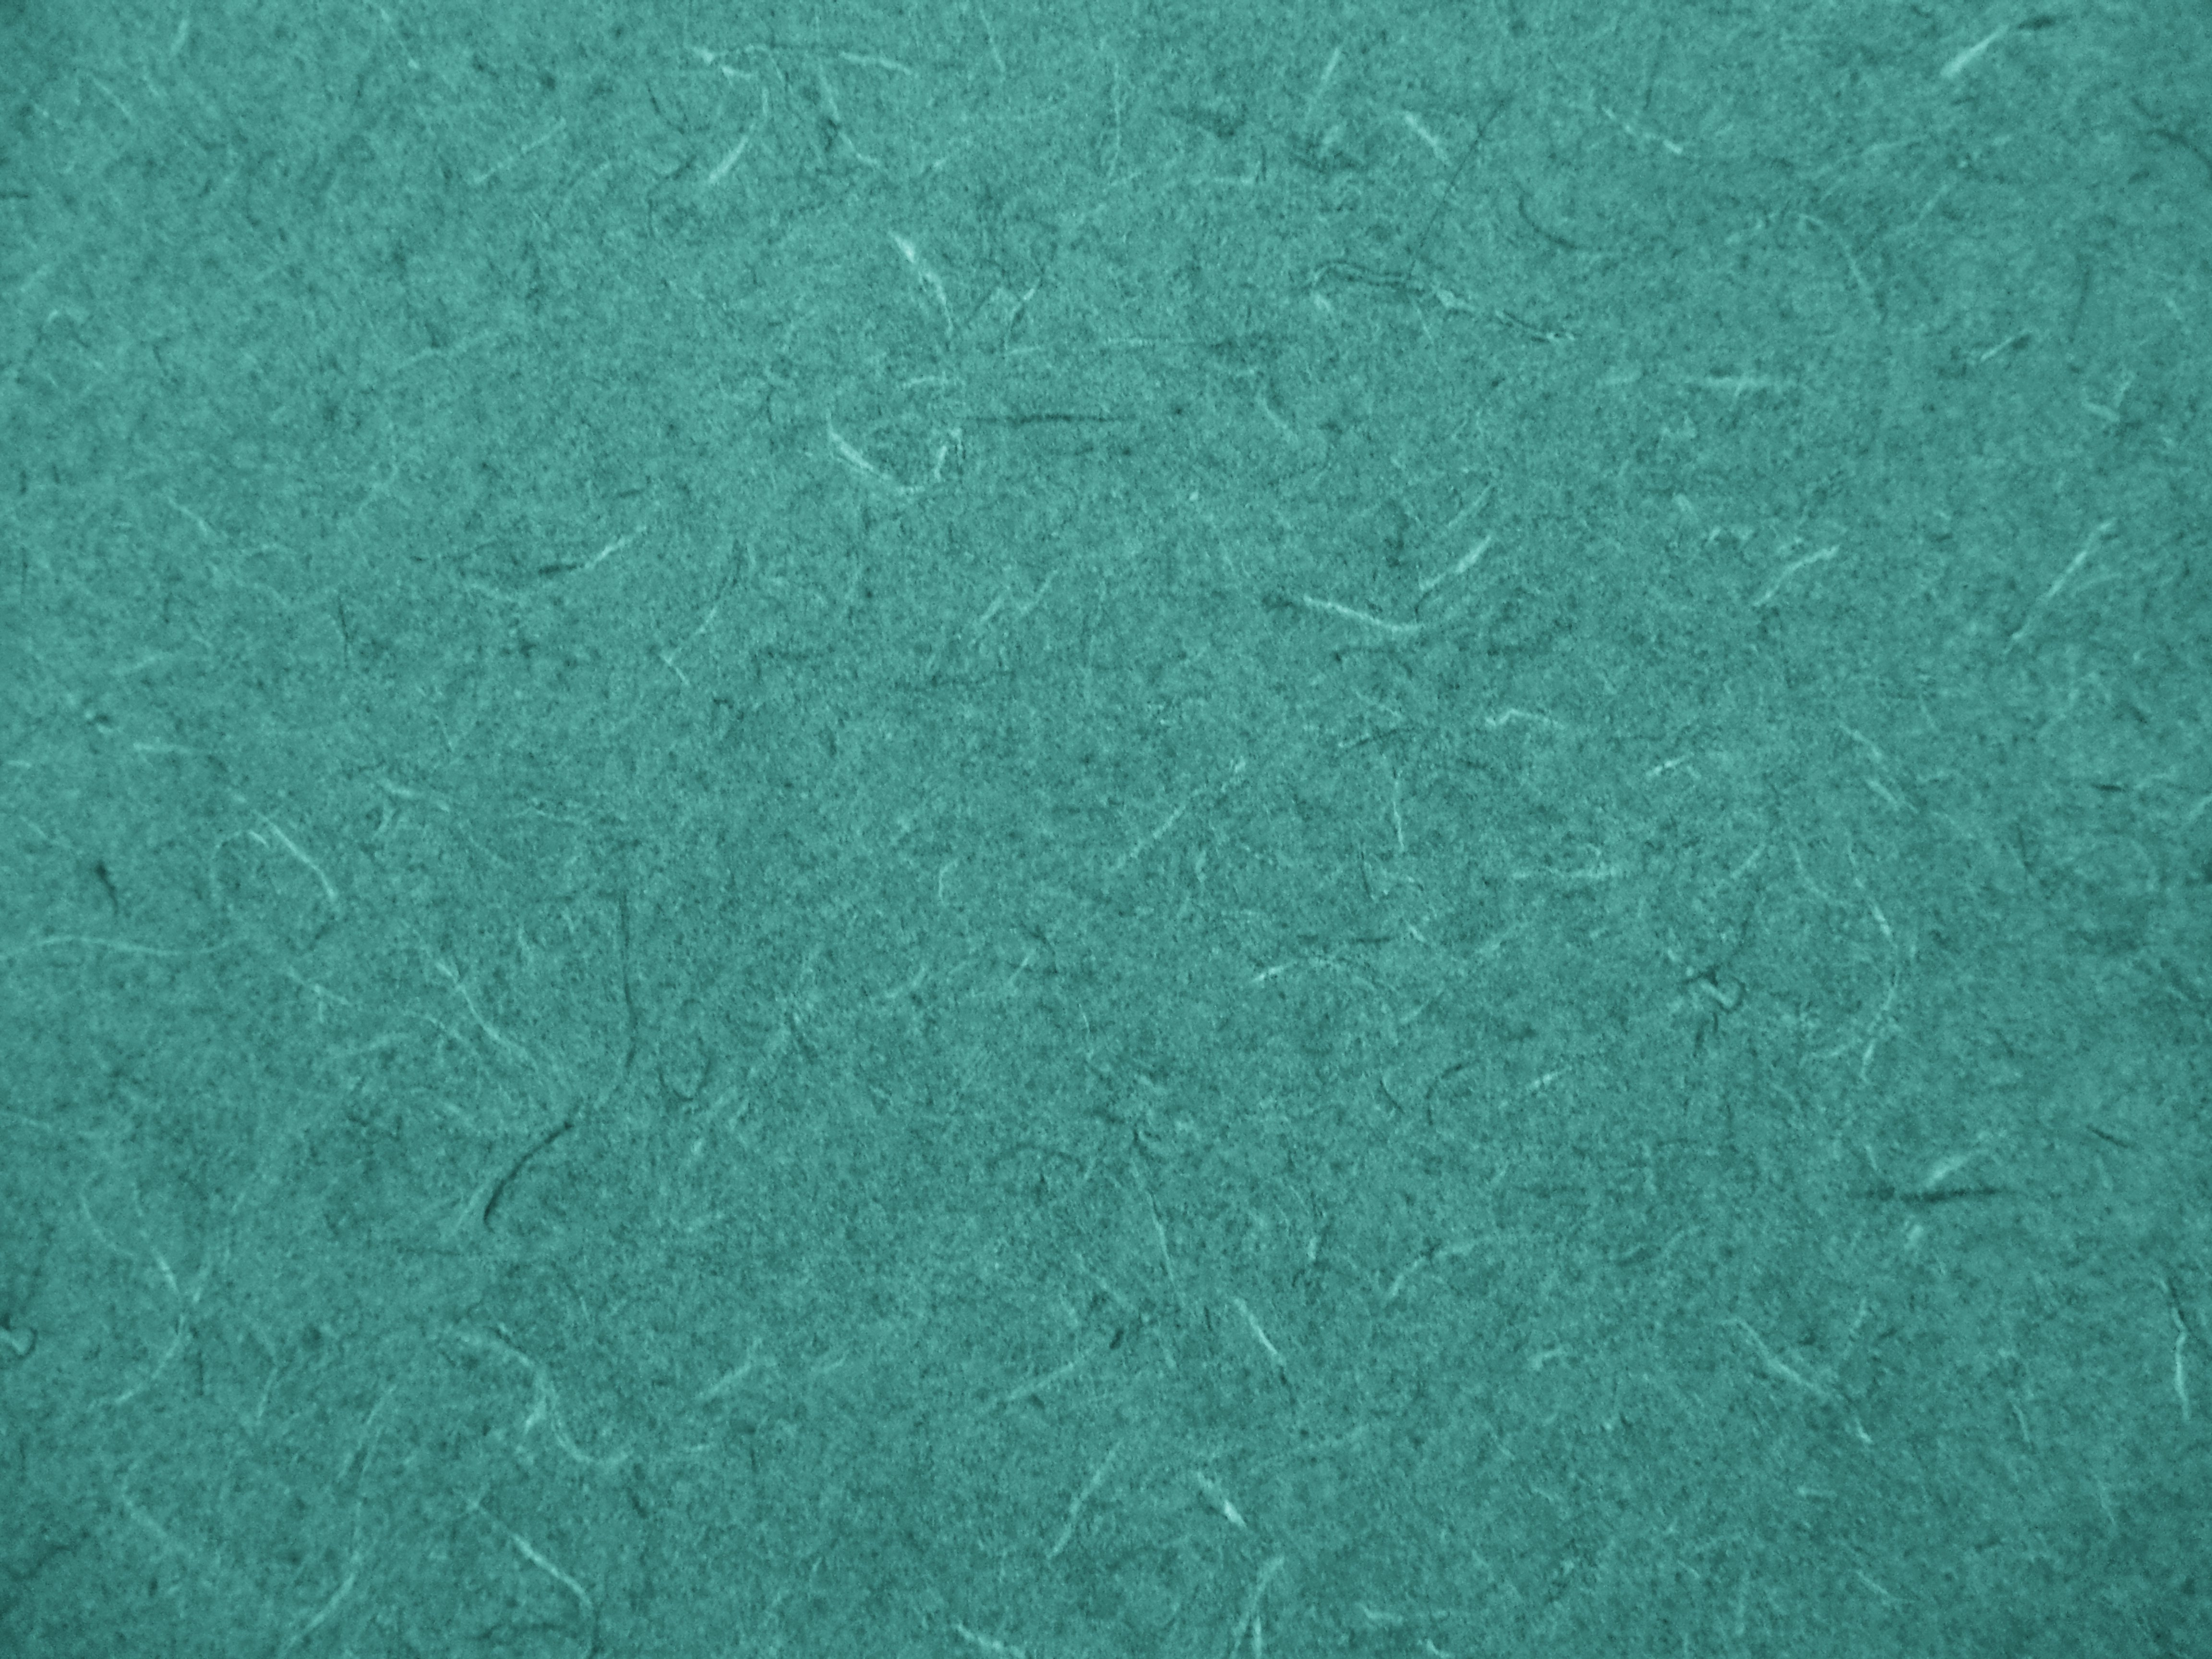 Turquoise Abstract Pattern Laminate Countertop Texture